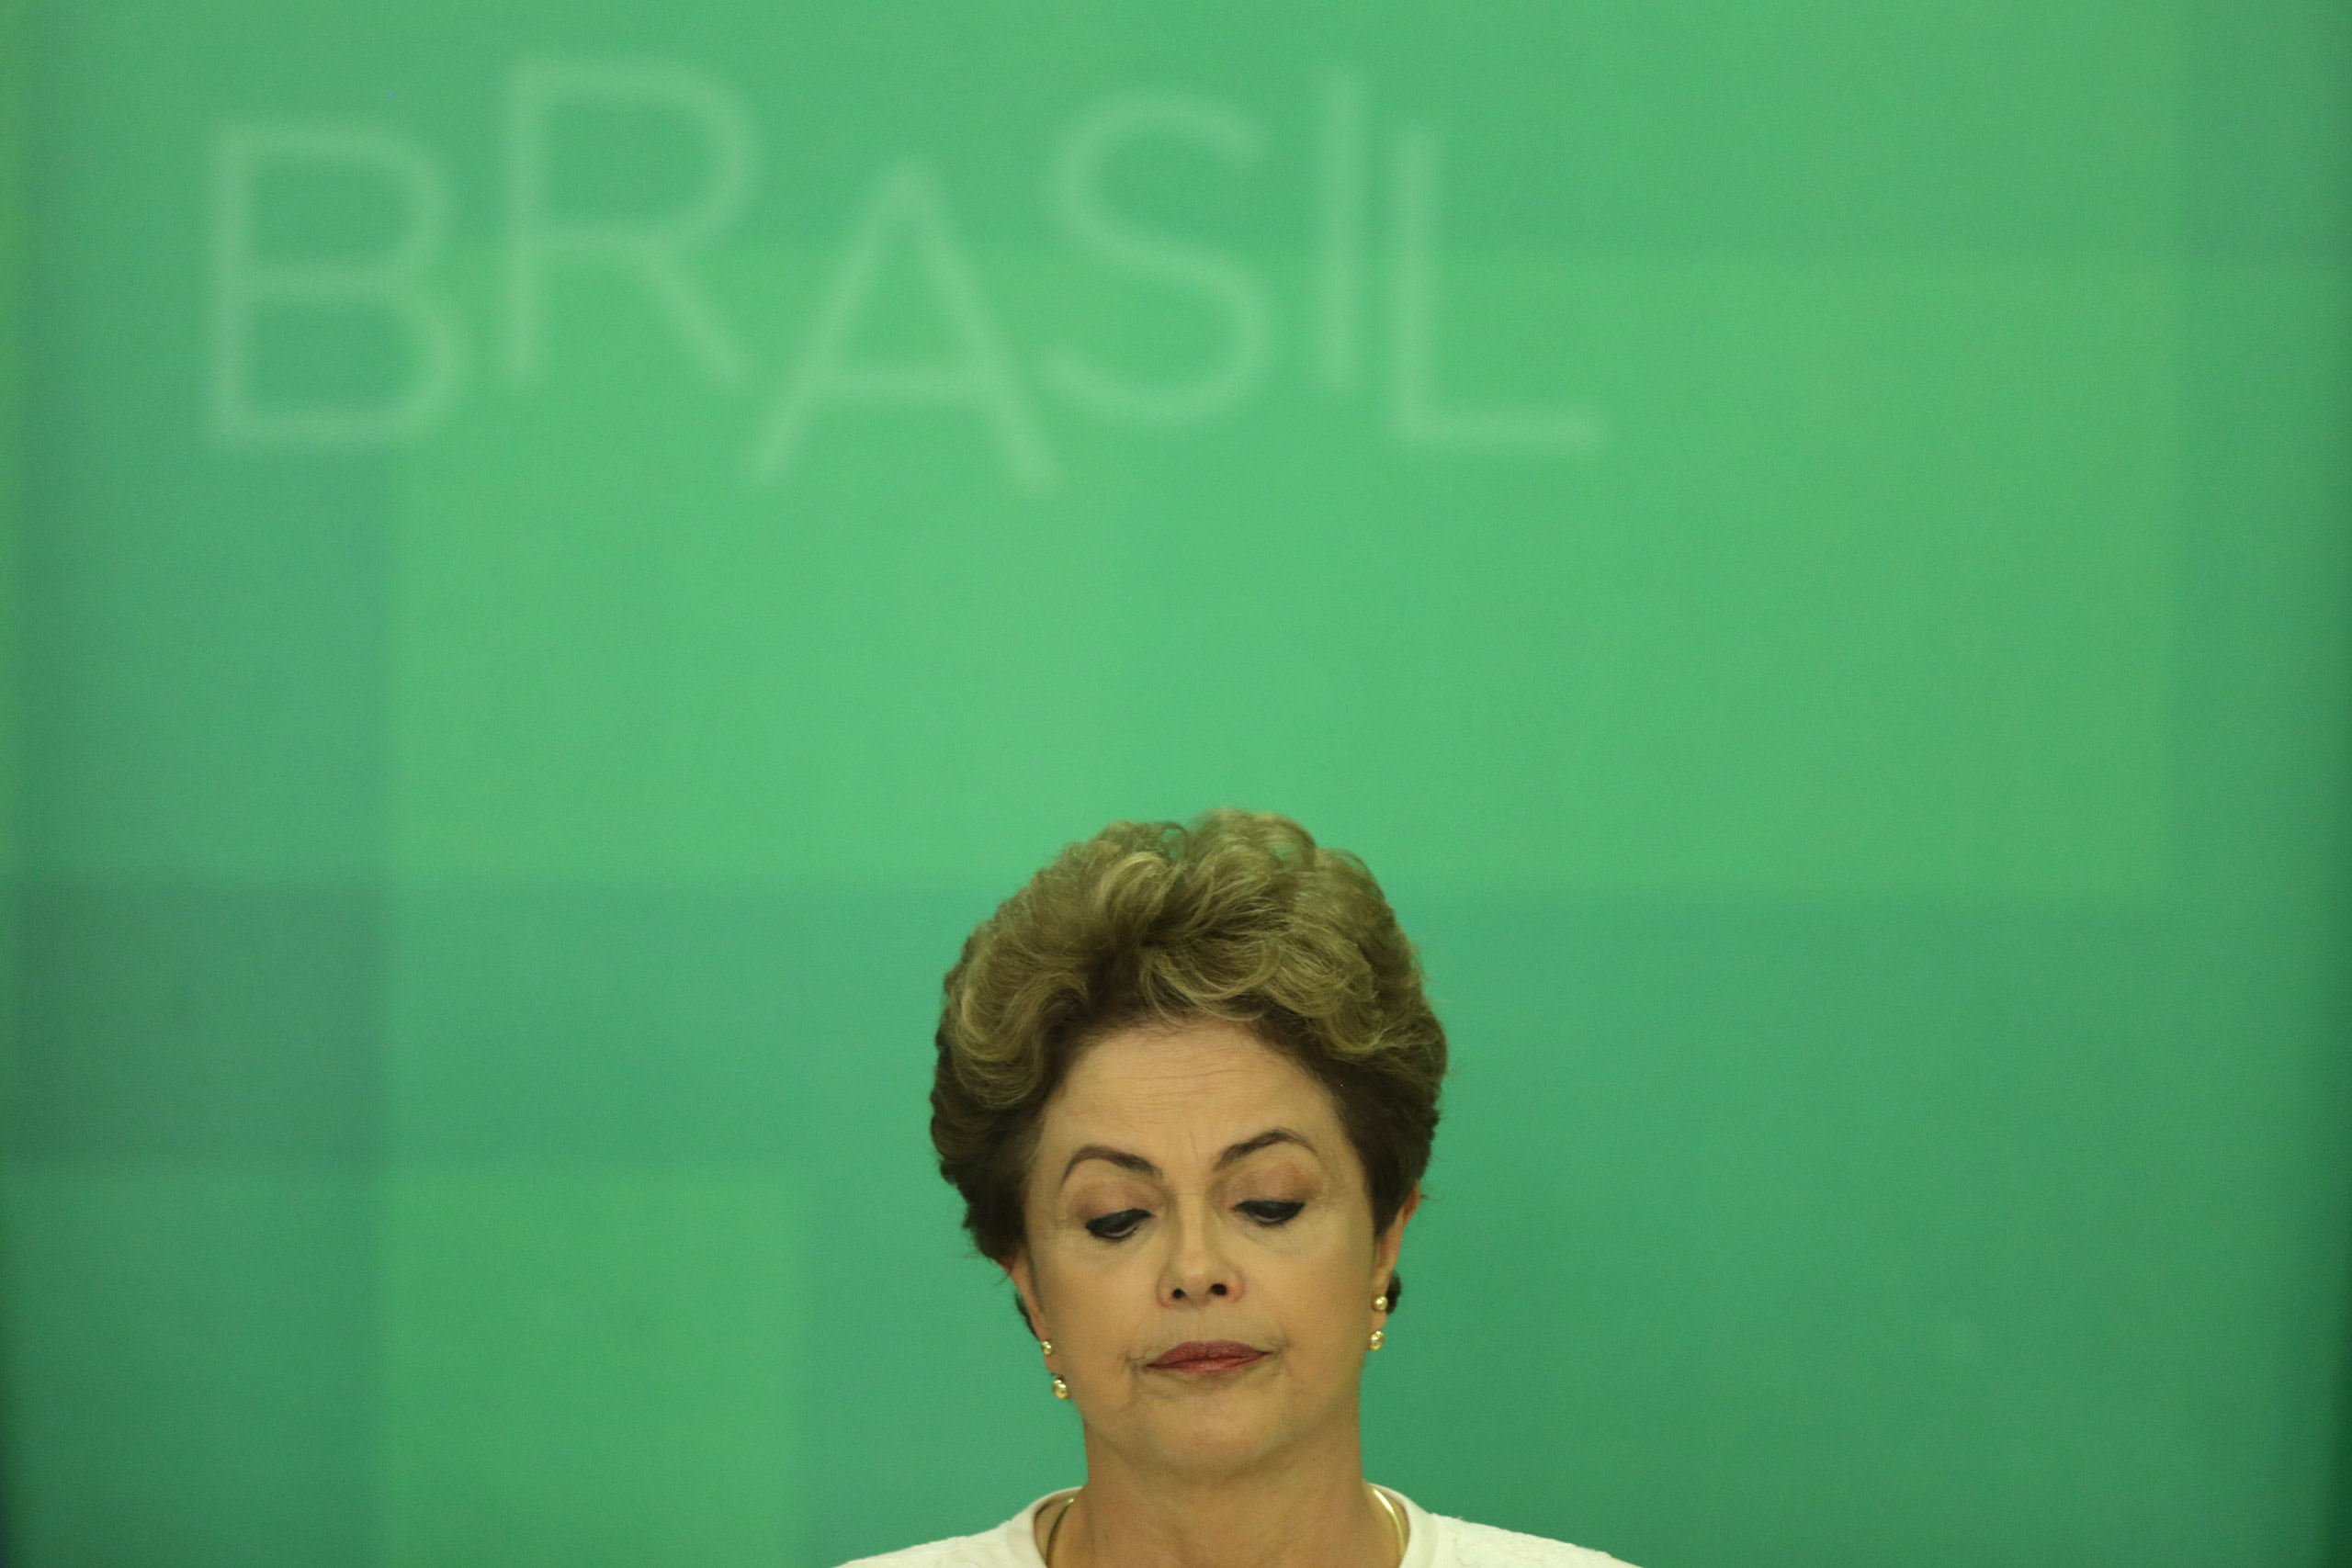 Brazil's President Dilma Rousseff during a press conference after impeachment proceedings were opened against her by the President of Chamber of Deputies Eduardo Cunha, at the Planalto Presidential Palace in Brasilia on Dec. 2, 2015.